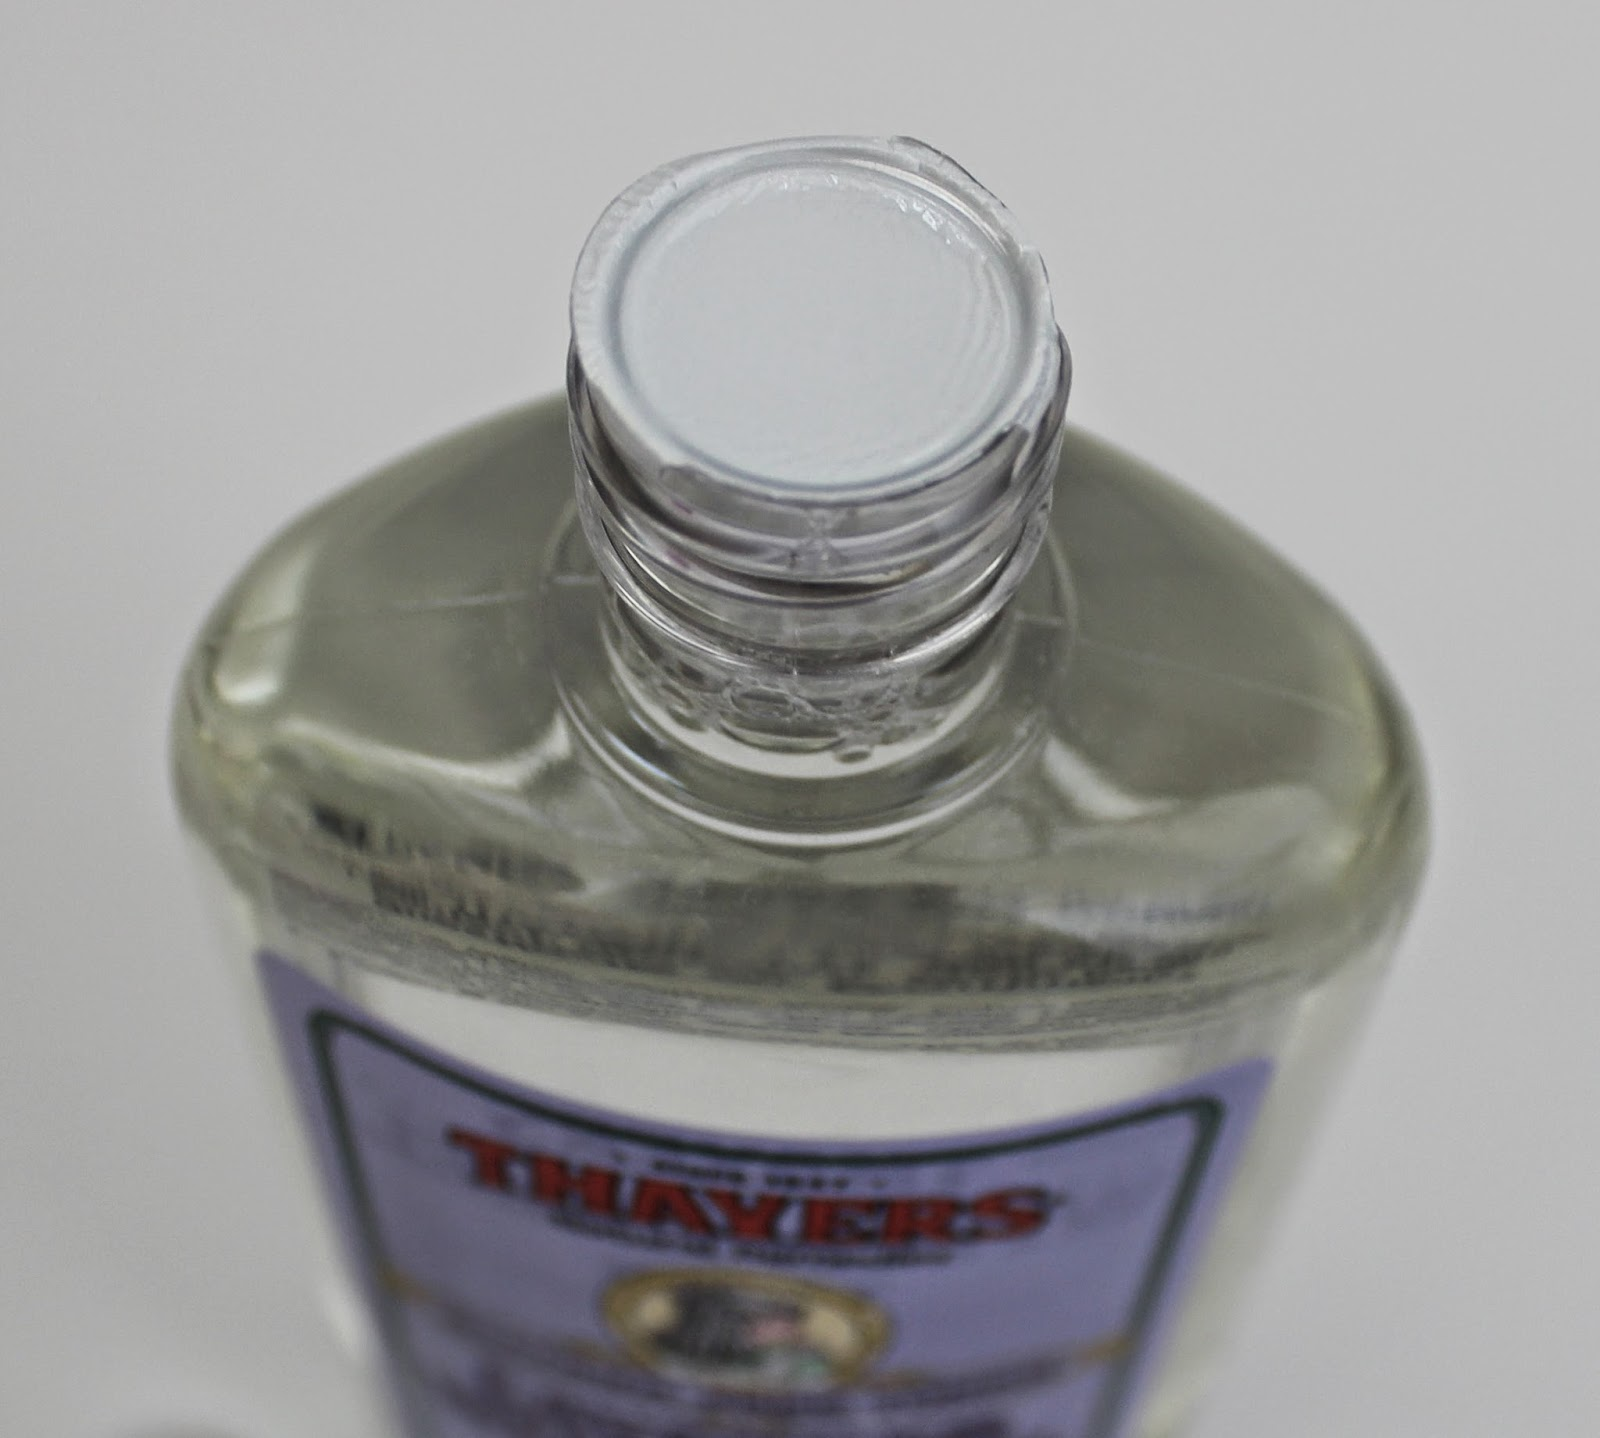 Thayers Witch Hazel Alcohol-Free Toner Lavender